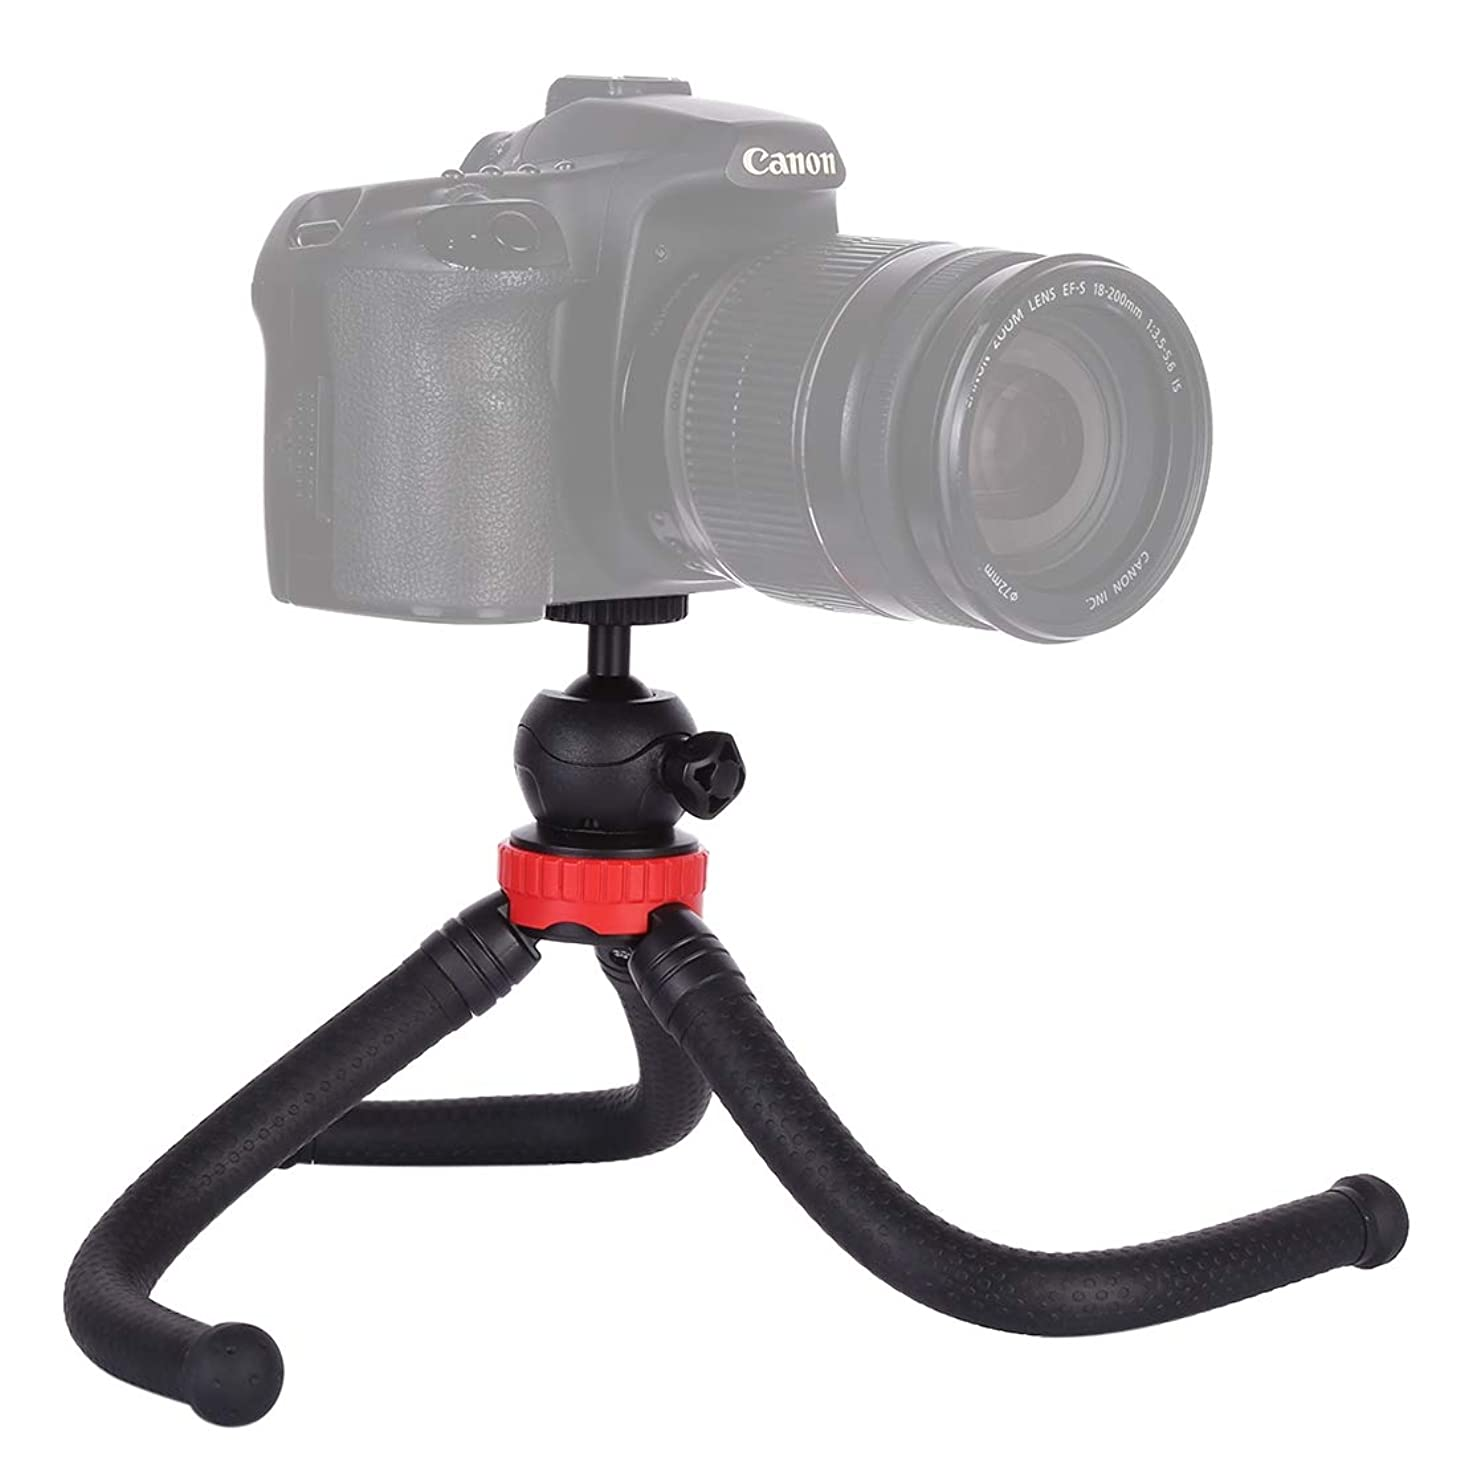 for DJI Gopro Action Camera, MZ305 Mini Octopus Flexible Tripod Holder with Ball Head for SLR Cameras, GoPro, Cellphone, Size:30cmx5cm